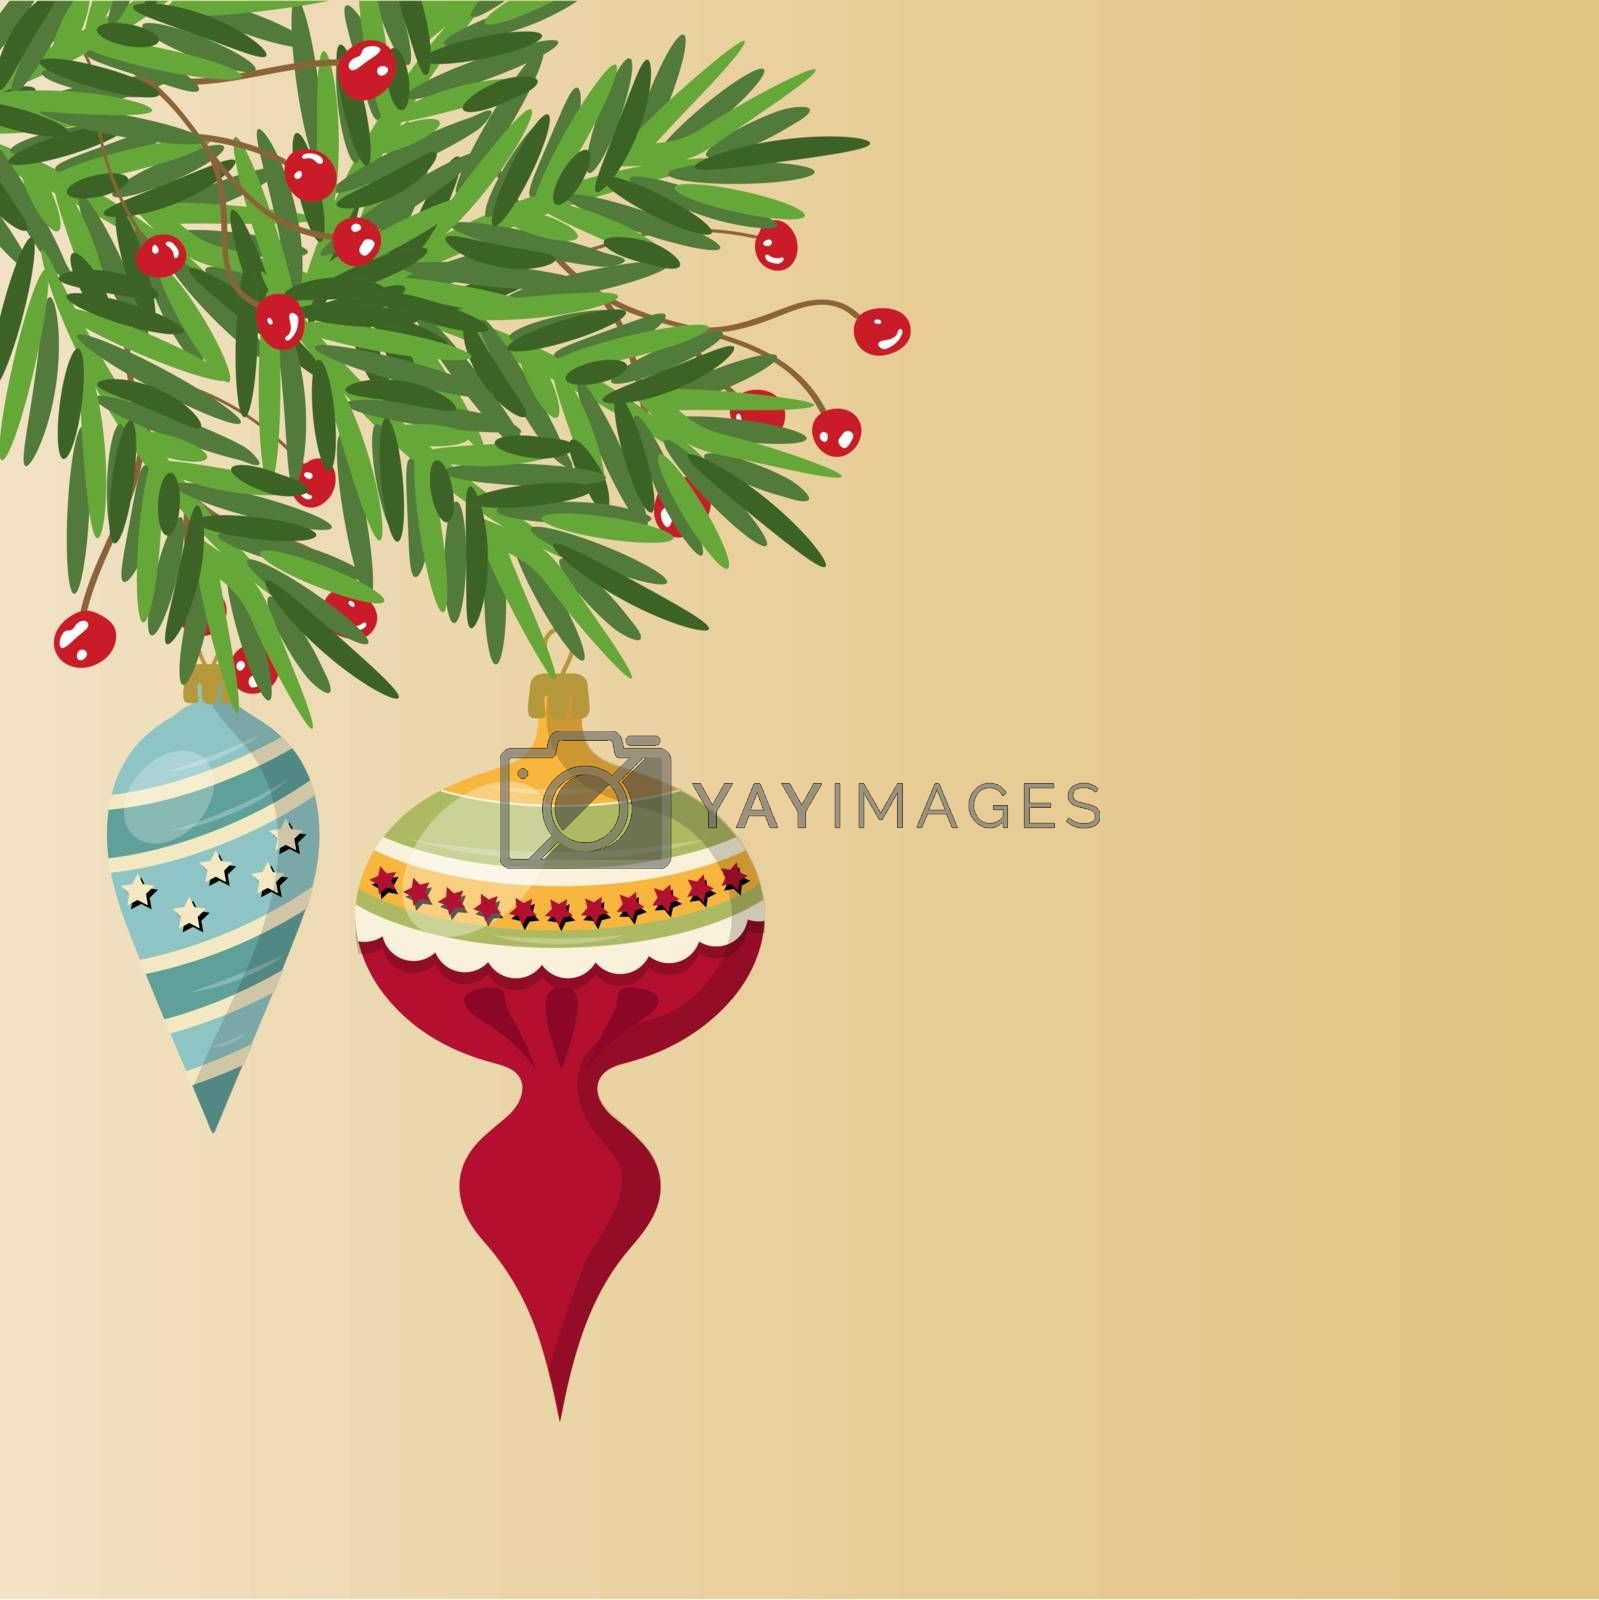 Royalty free image of Delicate customizable Christmas card with balls by balasoiu